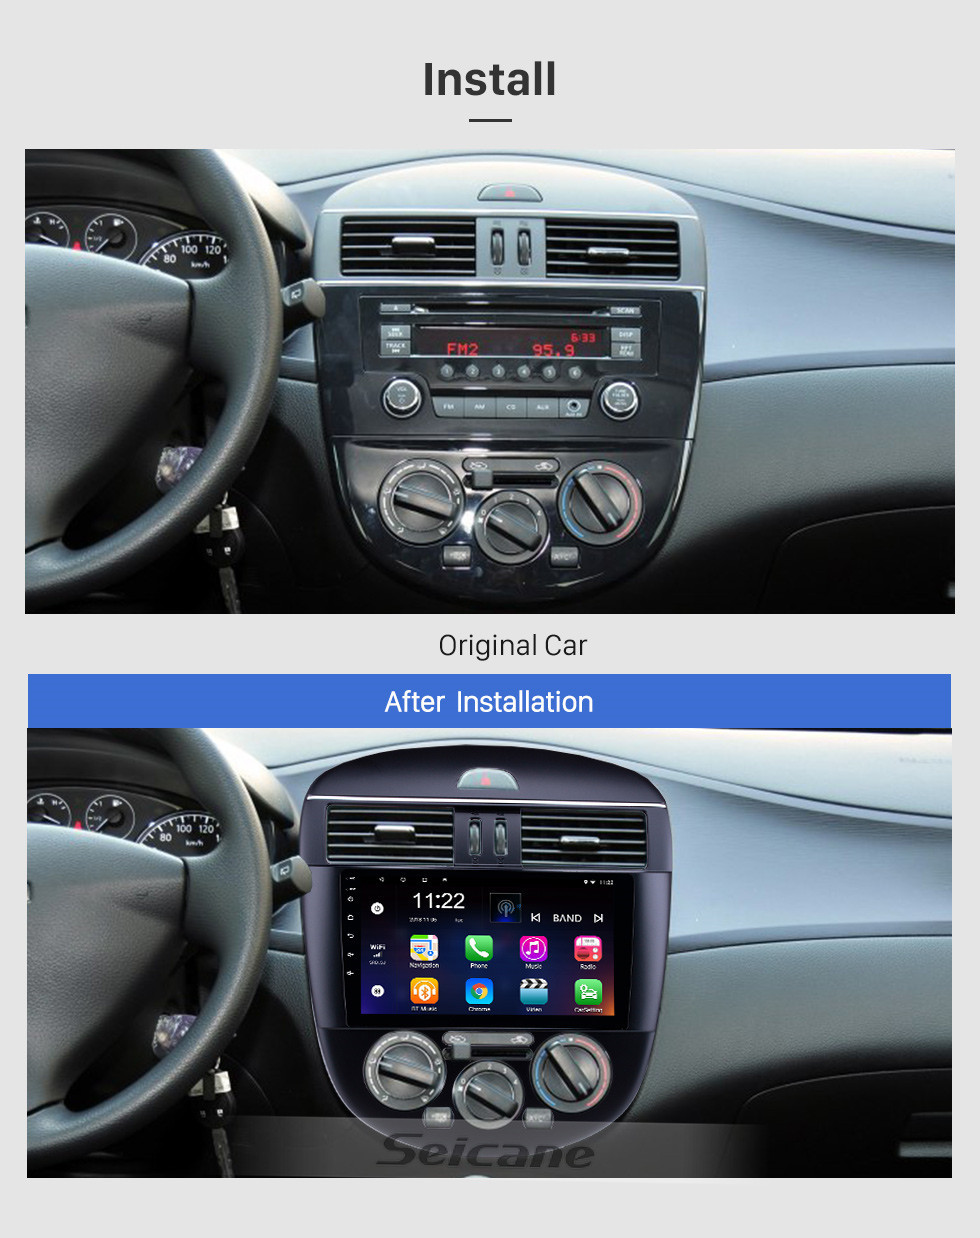 Seicane 9 inch Android 10.0 2011-2014 Nissan Tiida Manual A/C GPS Navigation Radio with Bluetooth HD Touchscreen WIFI Music support Carplay Digital TV